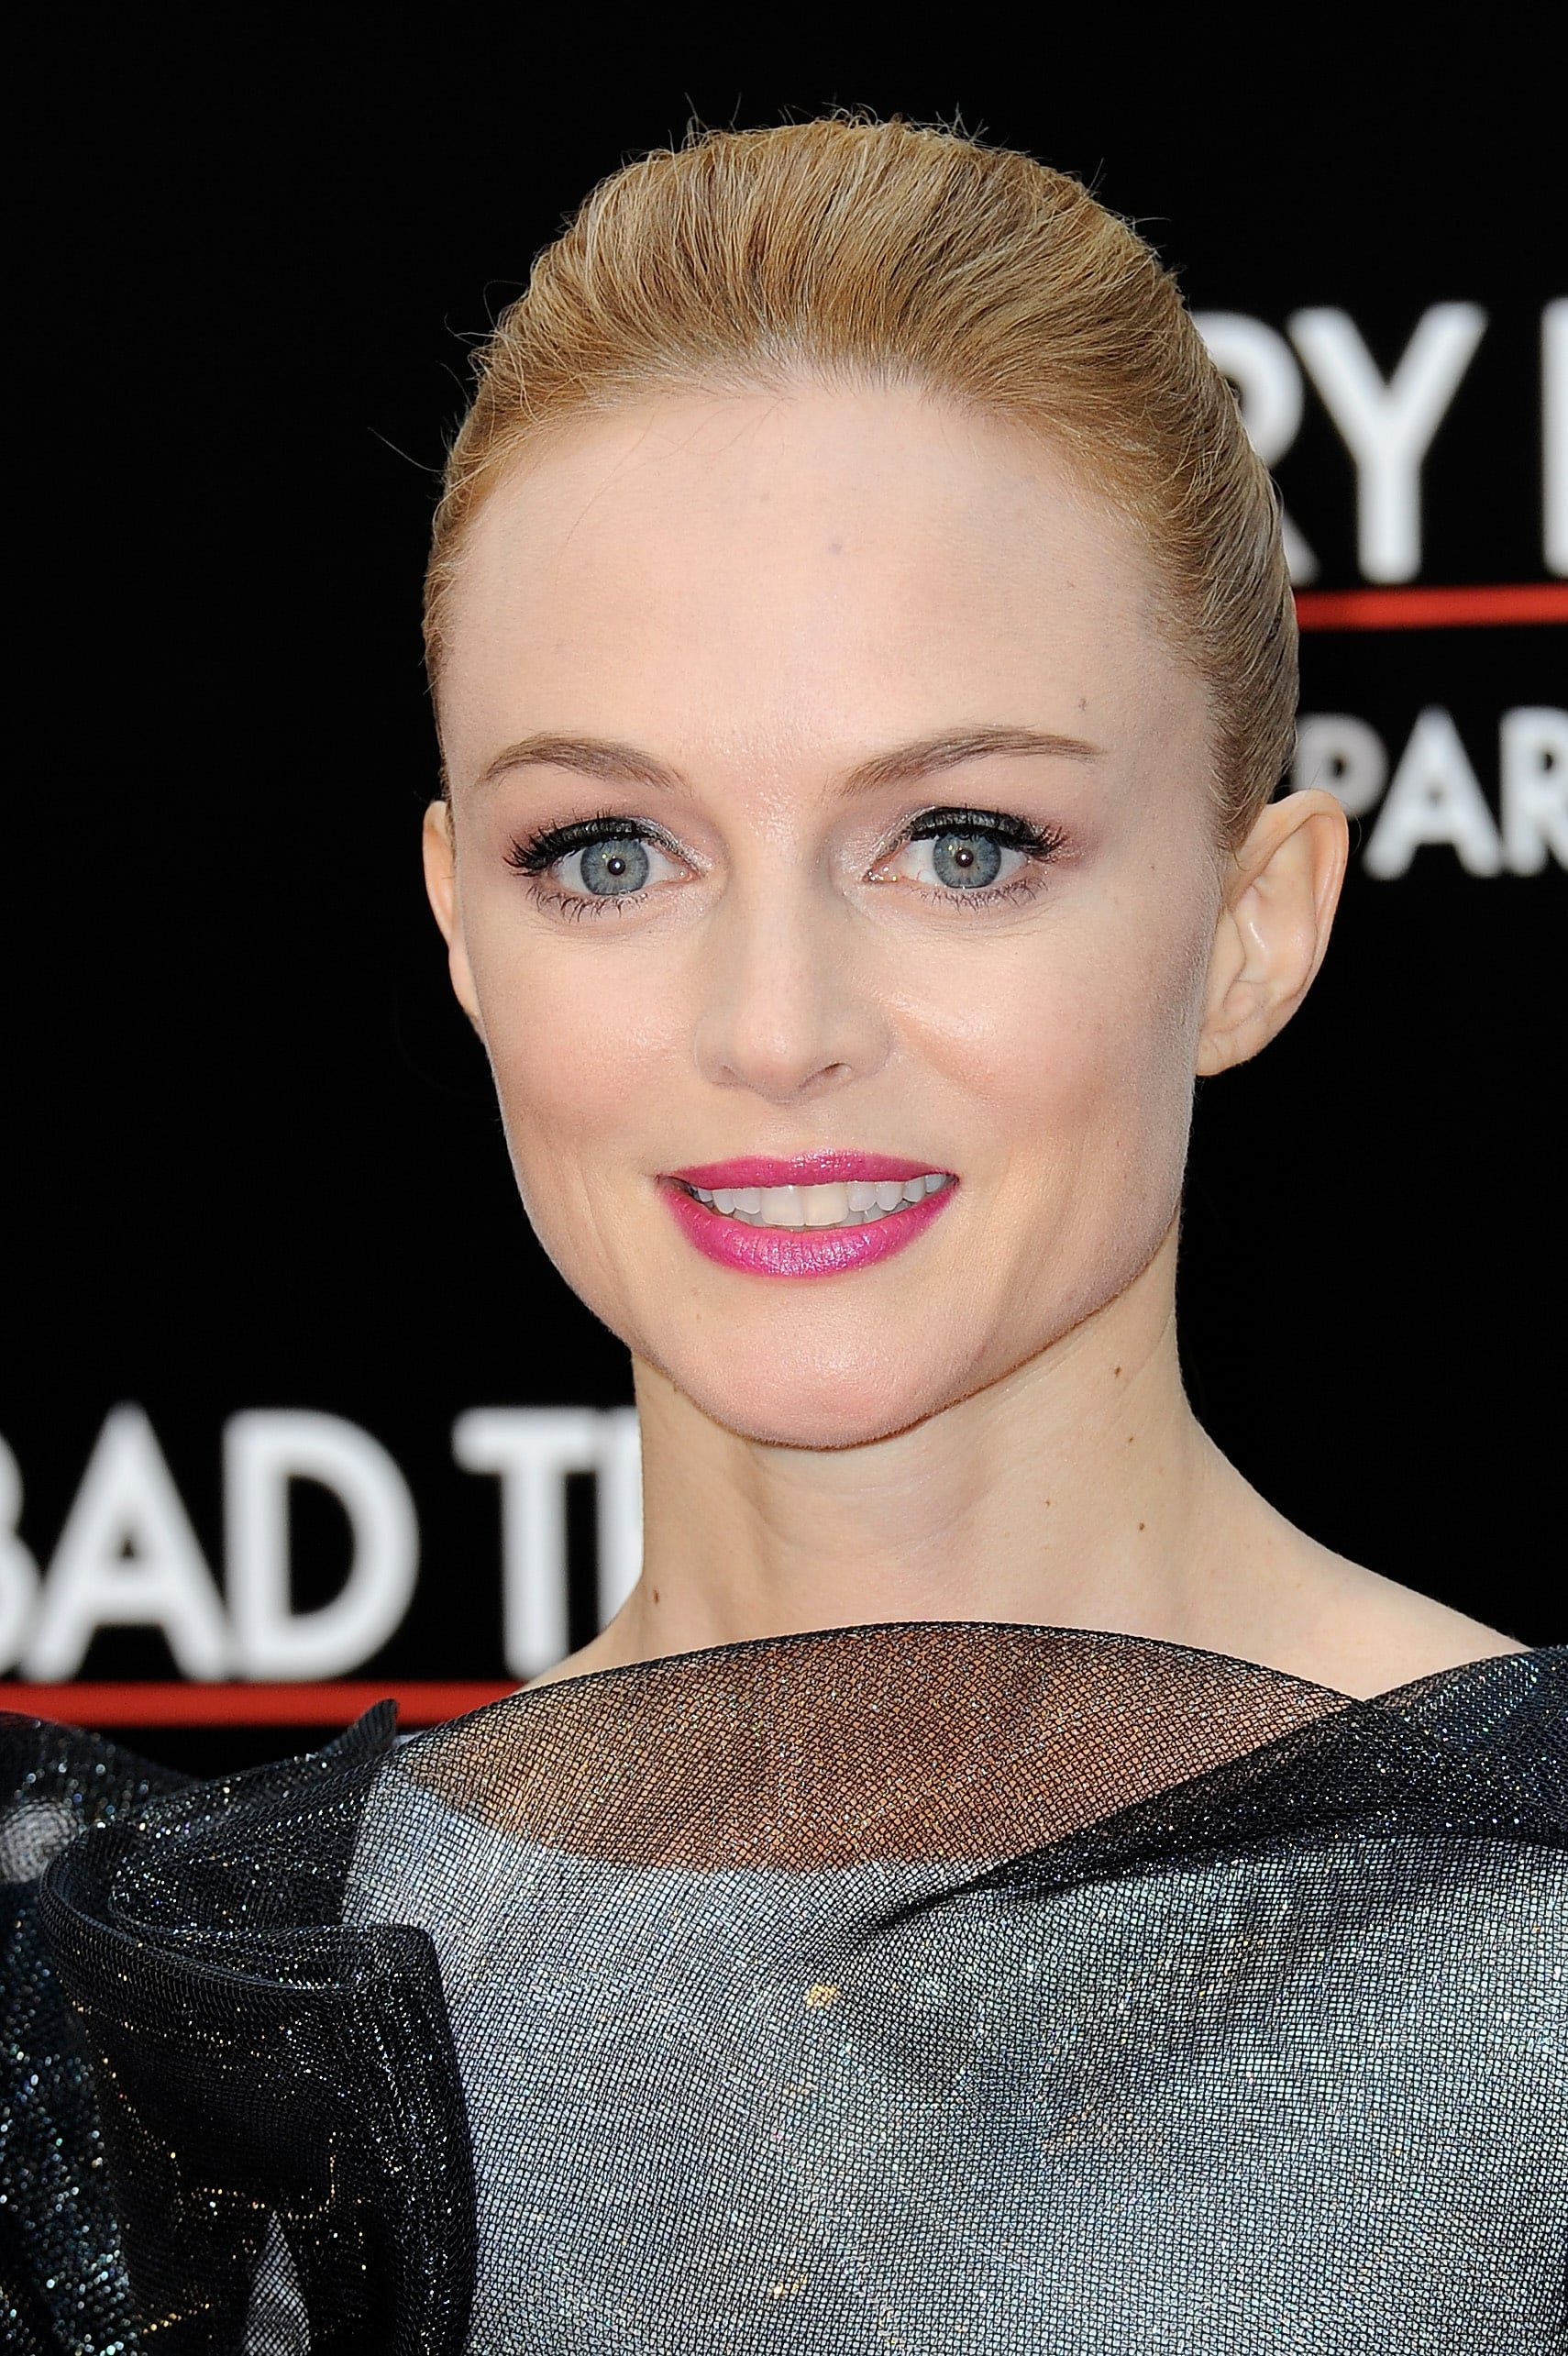 Heather Graham was seen in Paris for the French premiere of The Hangover Part III. She glammed up the red carpet with her slicked-back ponytail, voluminous lashes, and bright pink lips.